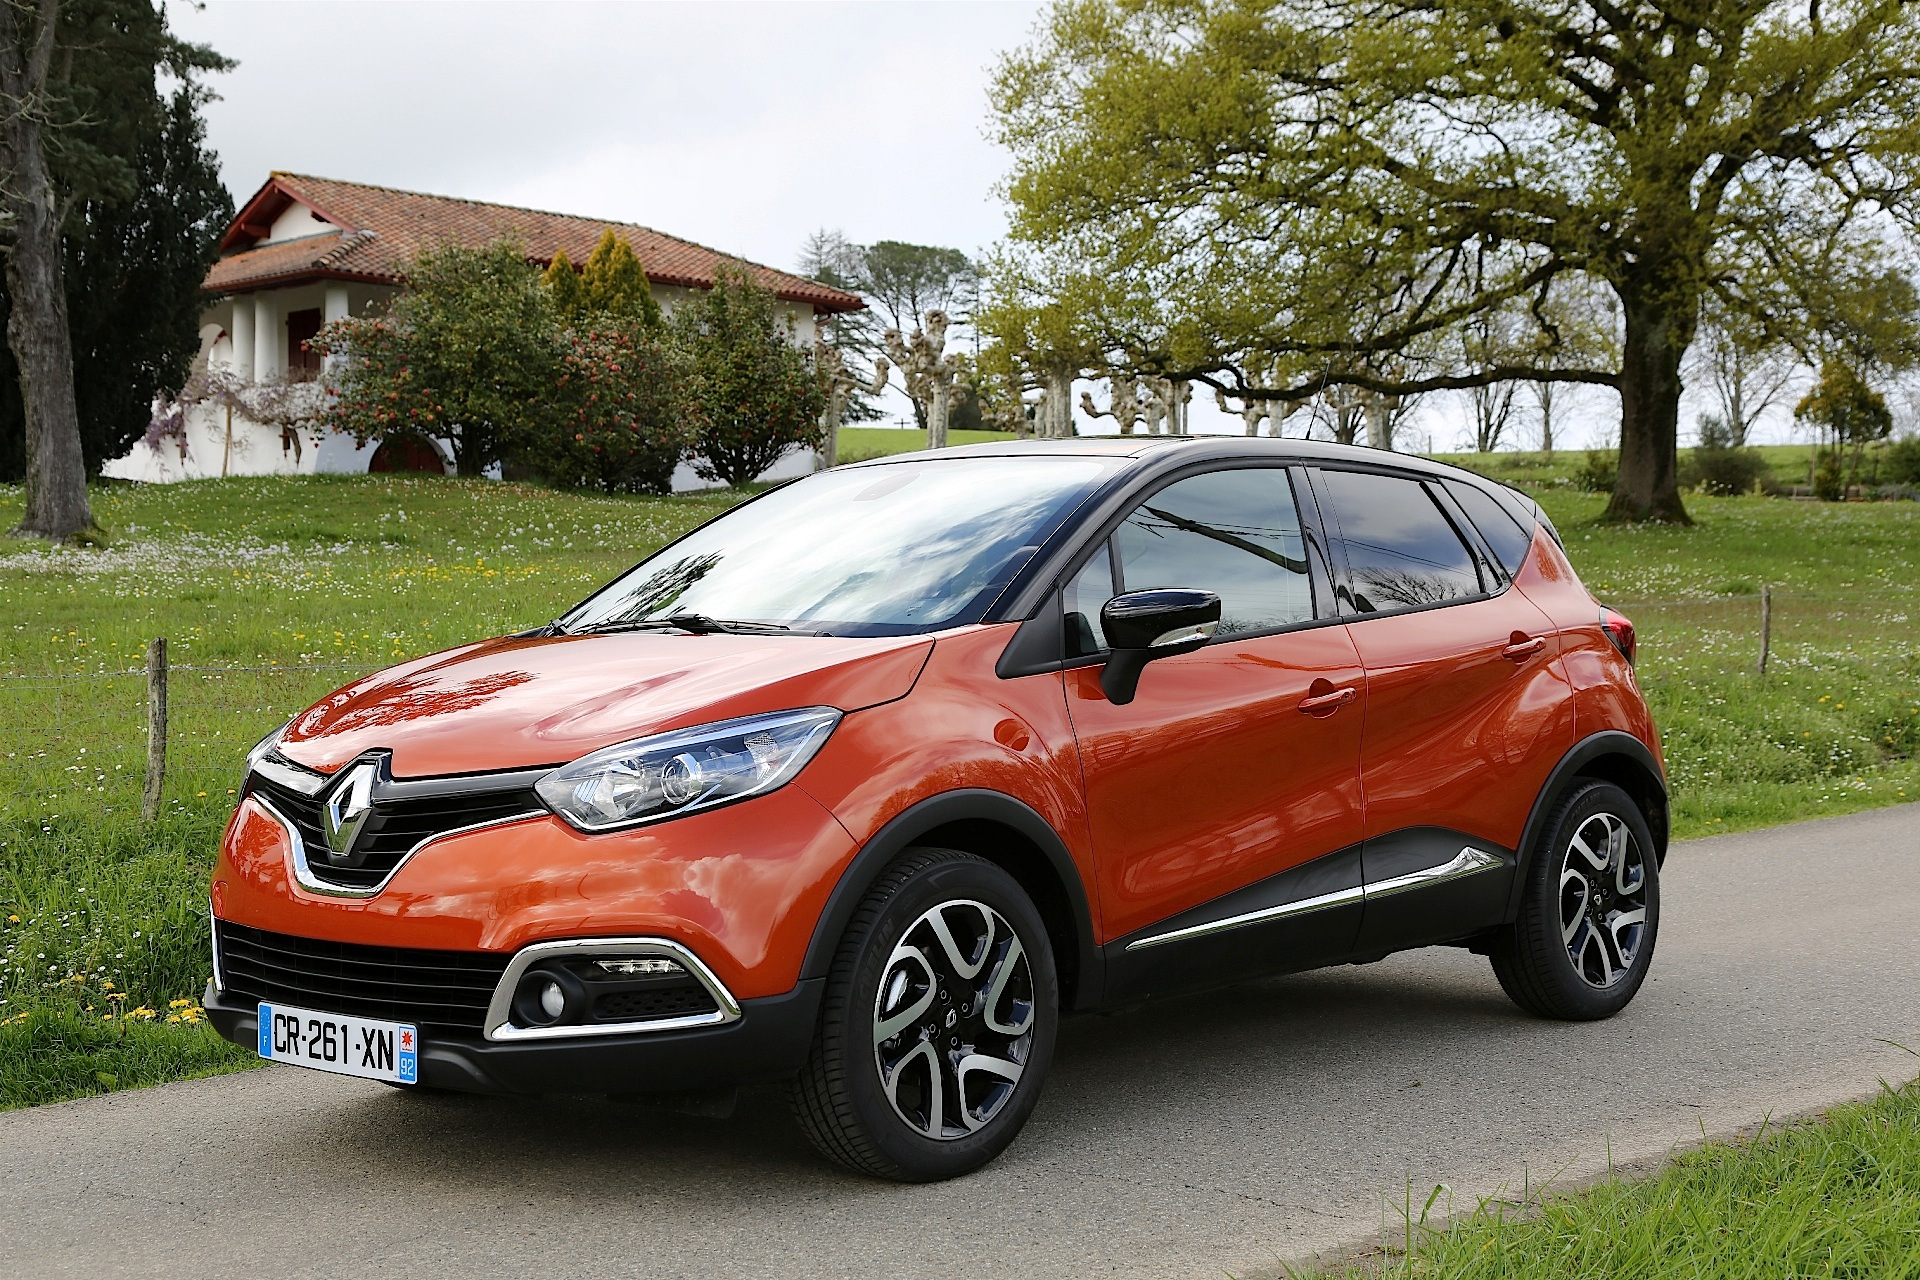 renault captur specs 2013 2014 2015 2016 2017 autoevolution. Black Bedroom Furniture Sets. Home Design Ideas